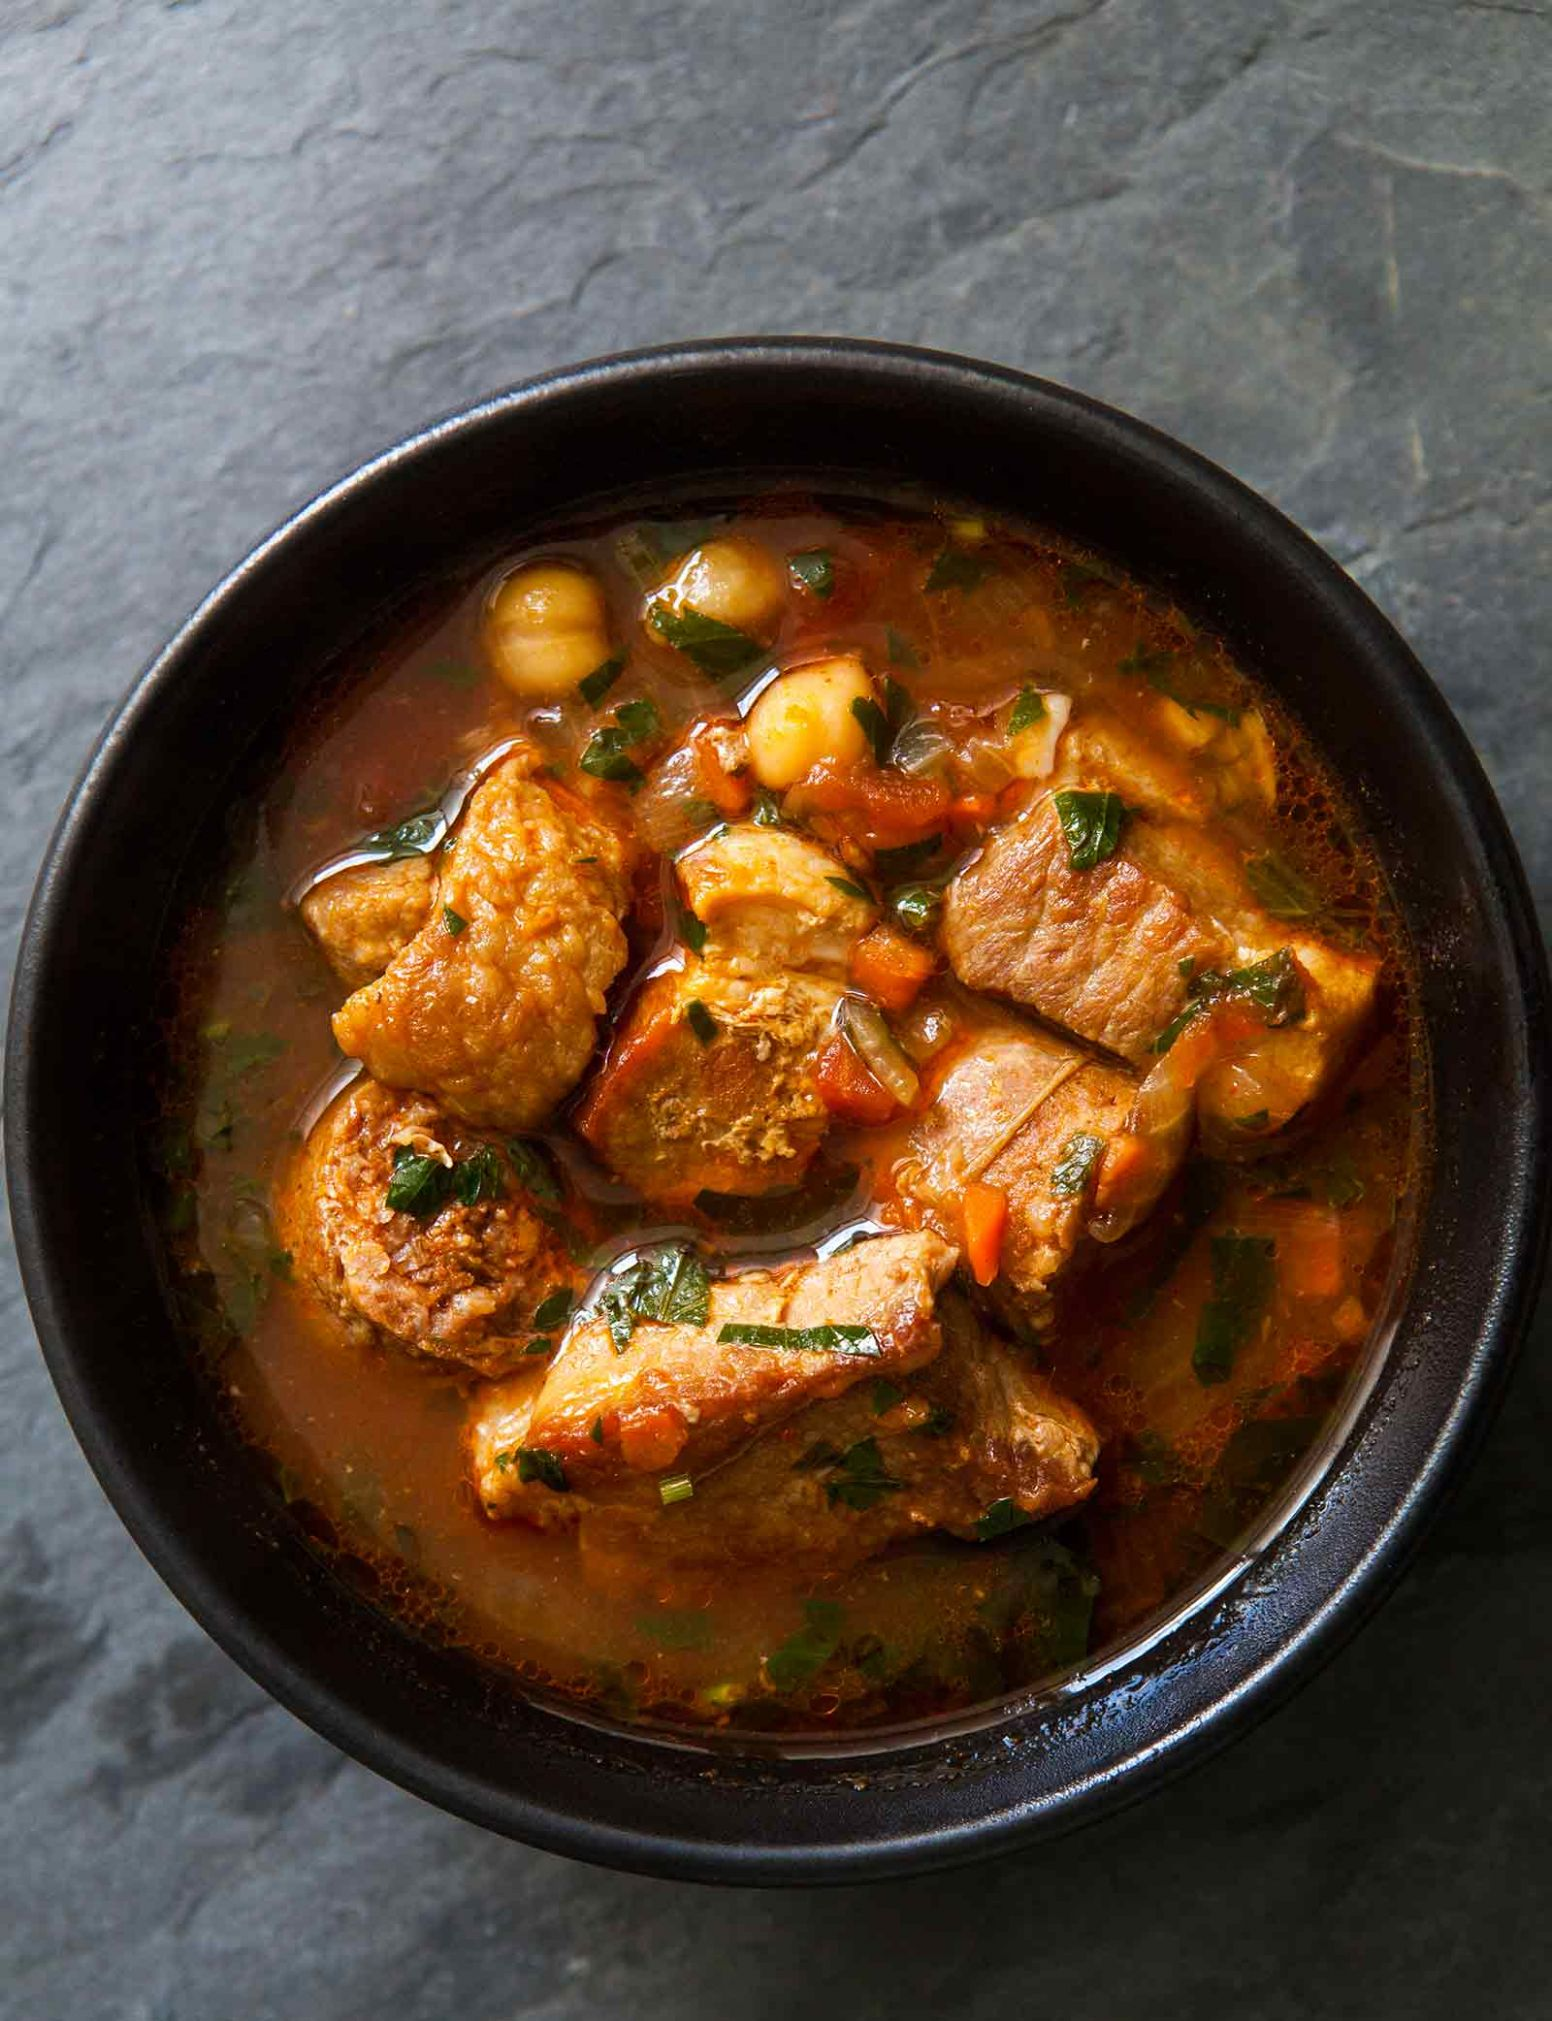 Spicy Pork Stew with Chickpeas and Sausage - Recipes Pork Pieces